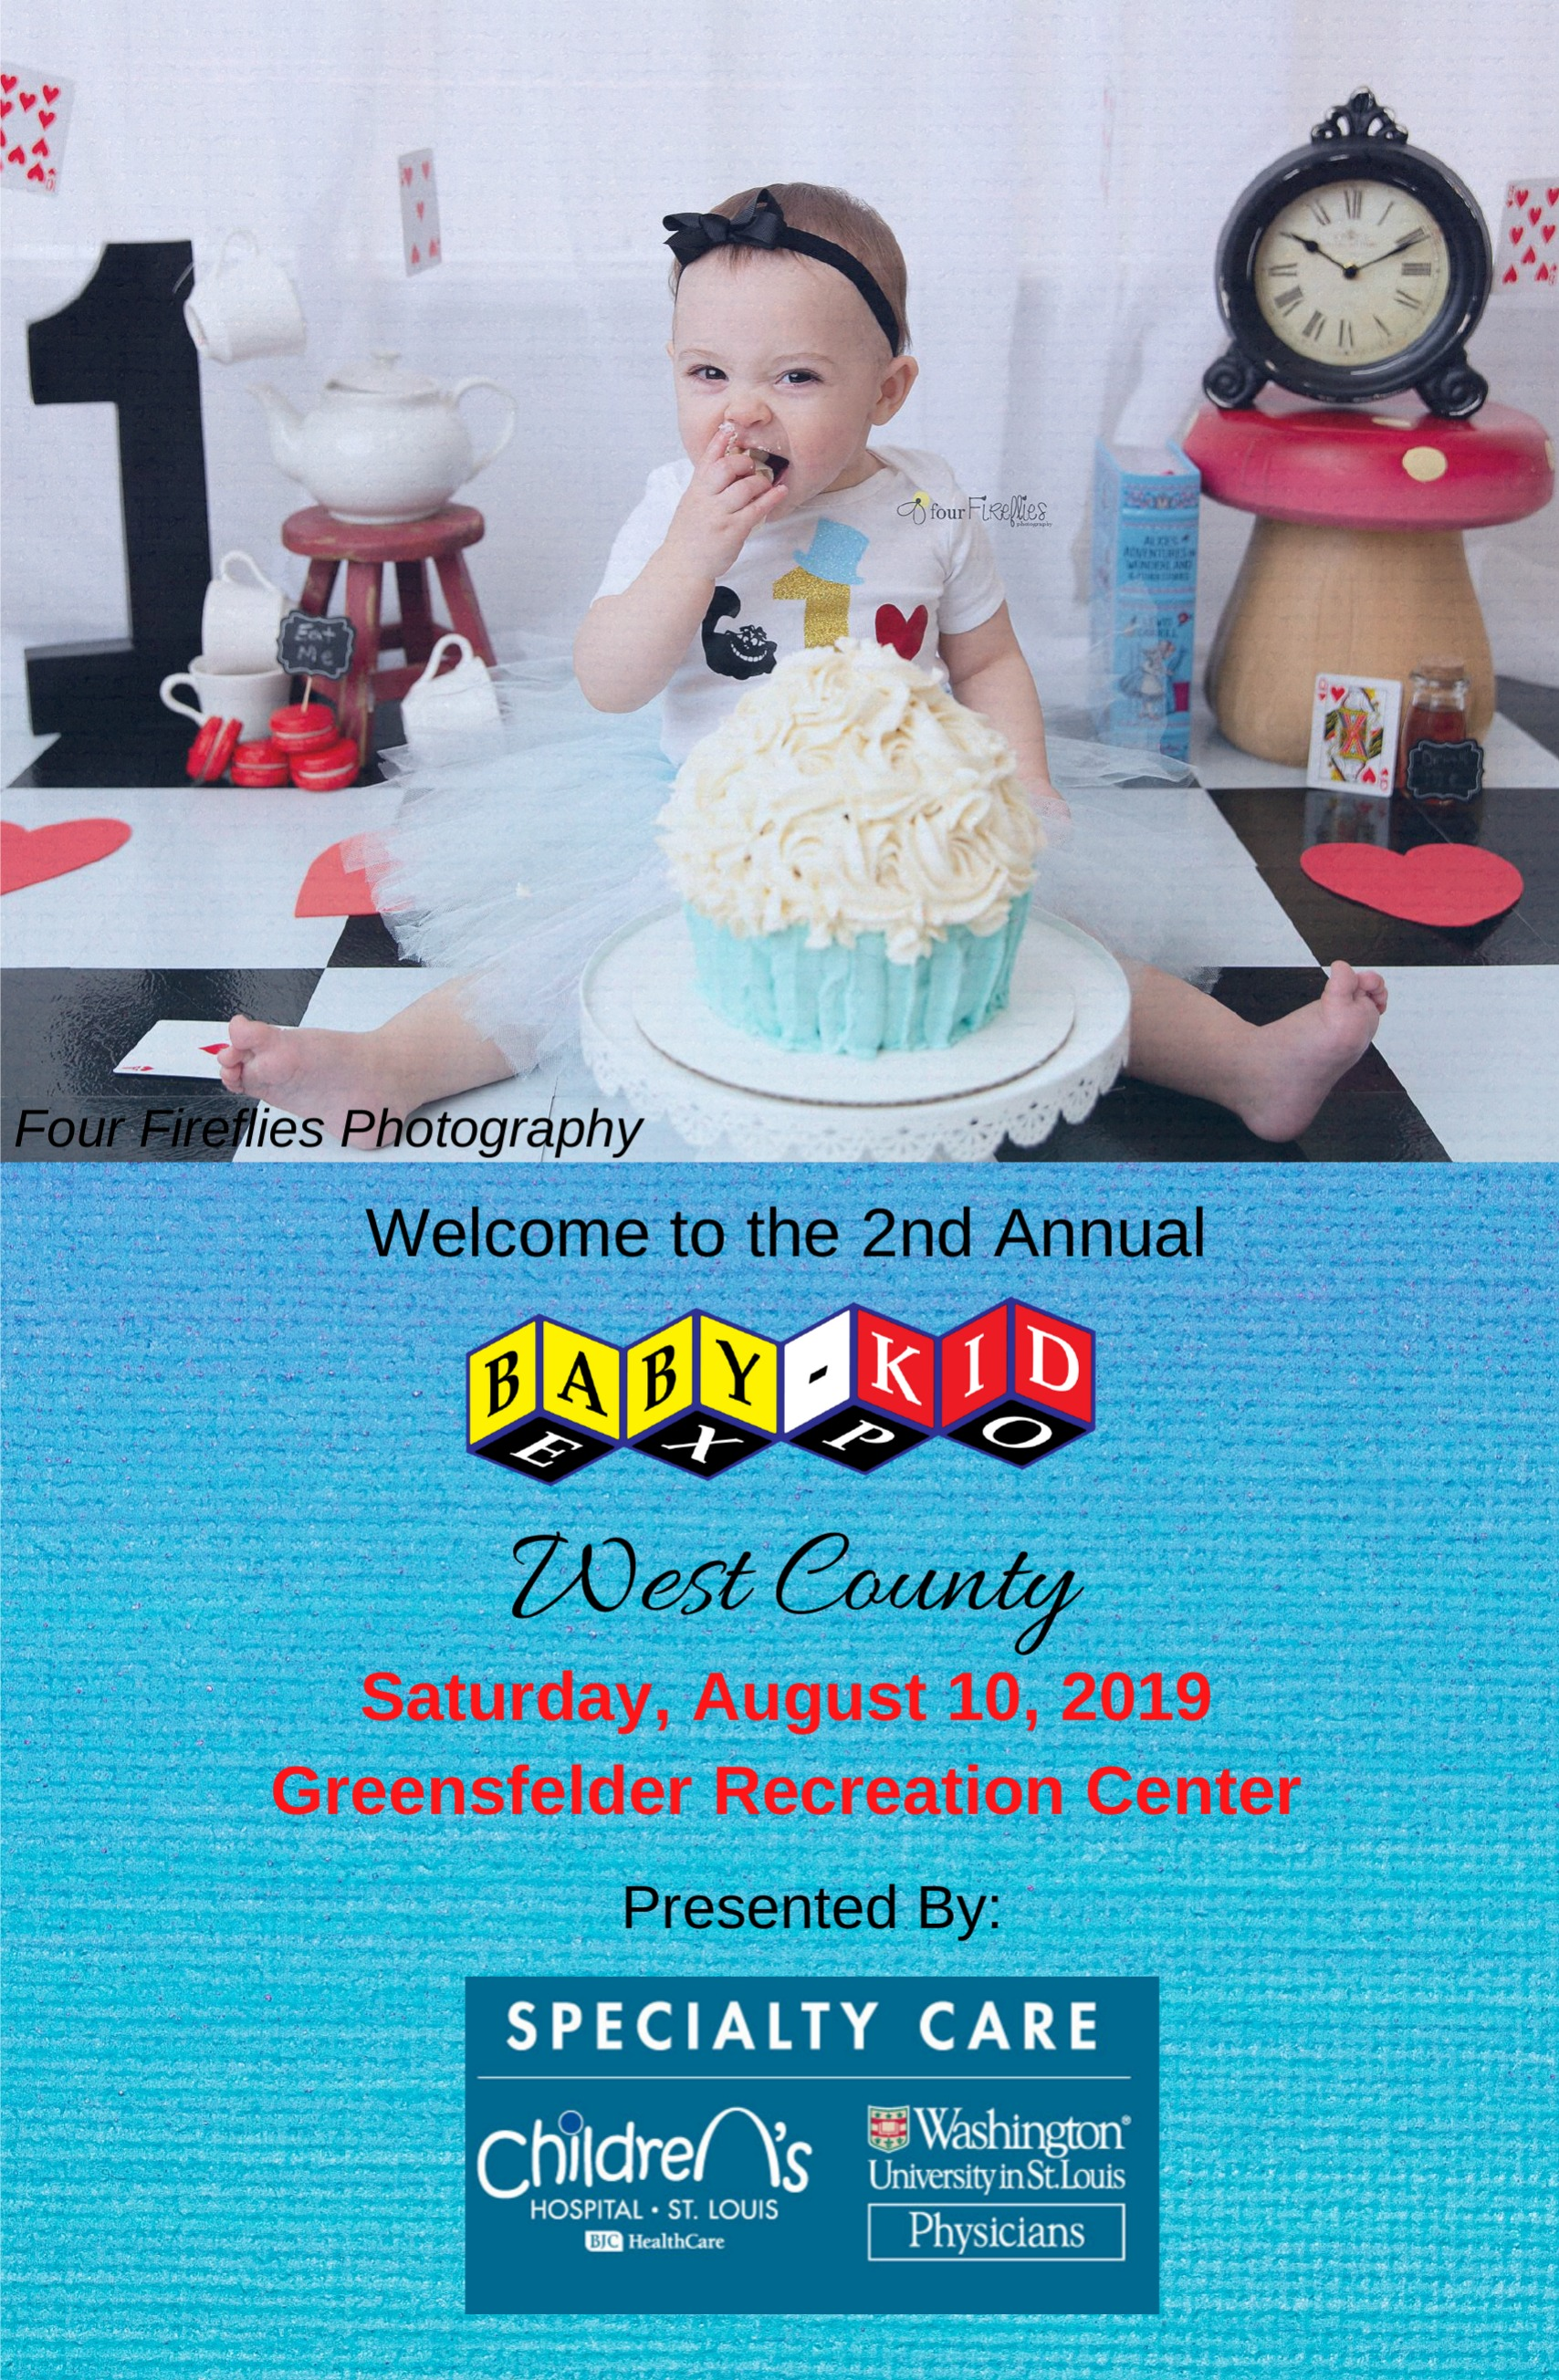 2019 Baby Kid Expo West County - Untitled Page 1